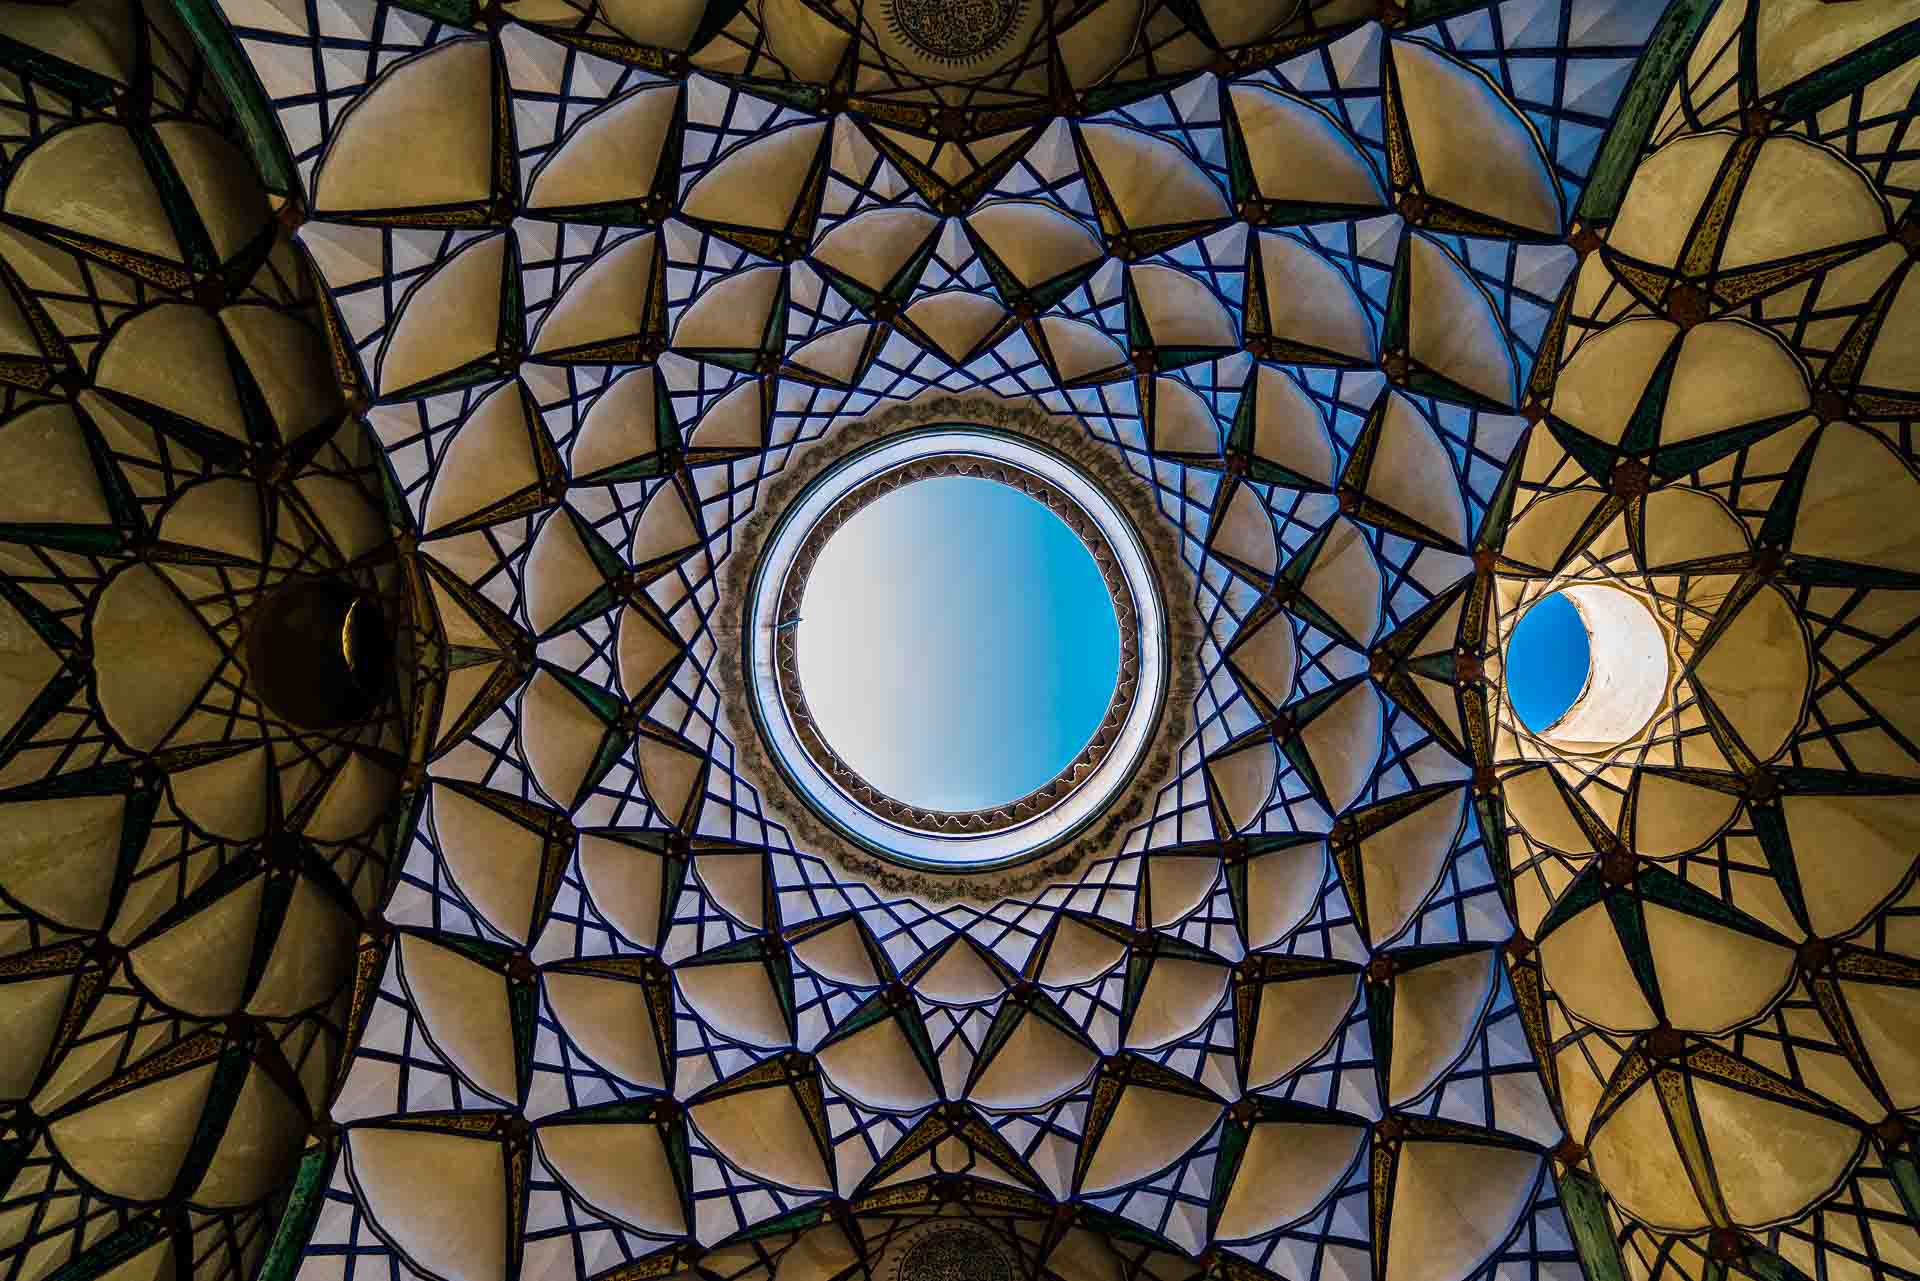 Borujerdi Historical House 3, kashan, iran, pescart, photo blog, travel blog, blog, photo travel blog, enrico pescantini, pescantini